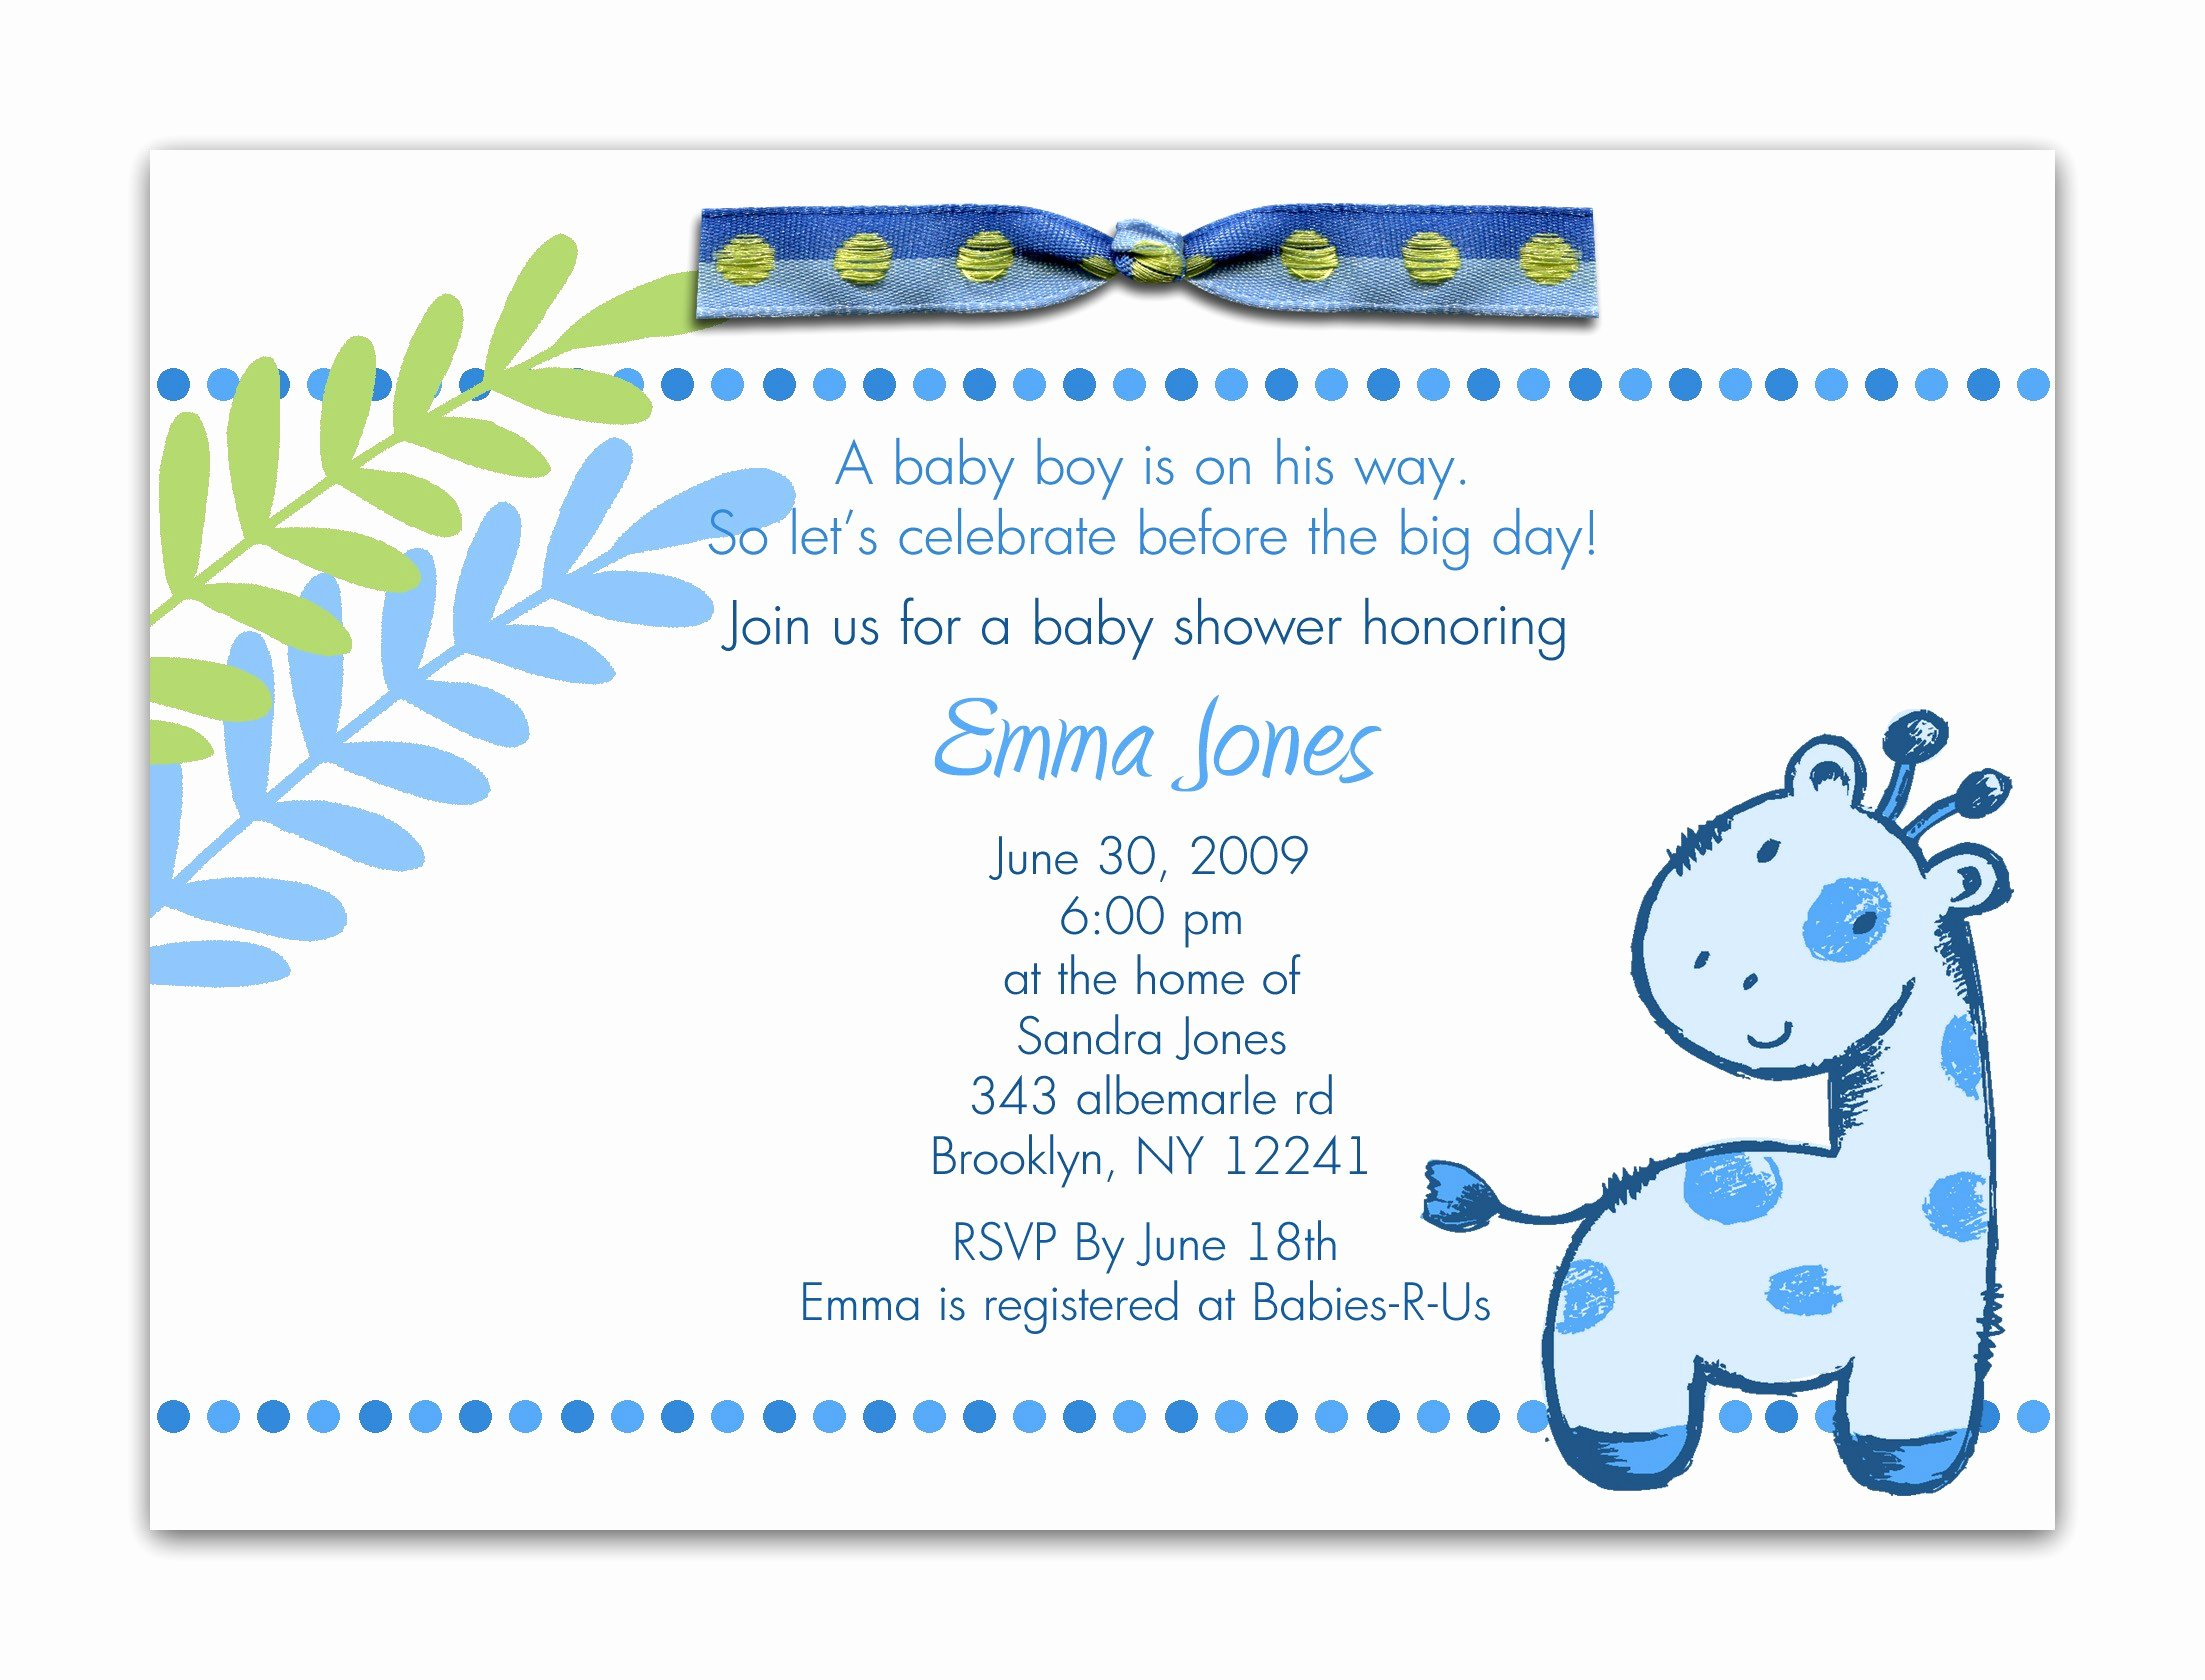 Baby Shower Template Word Lovely Baby Shower Word Template Portablegasgrillweber